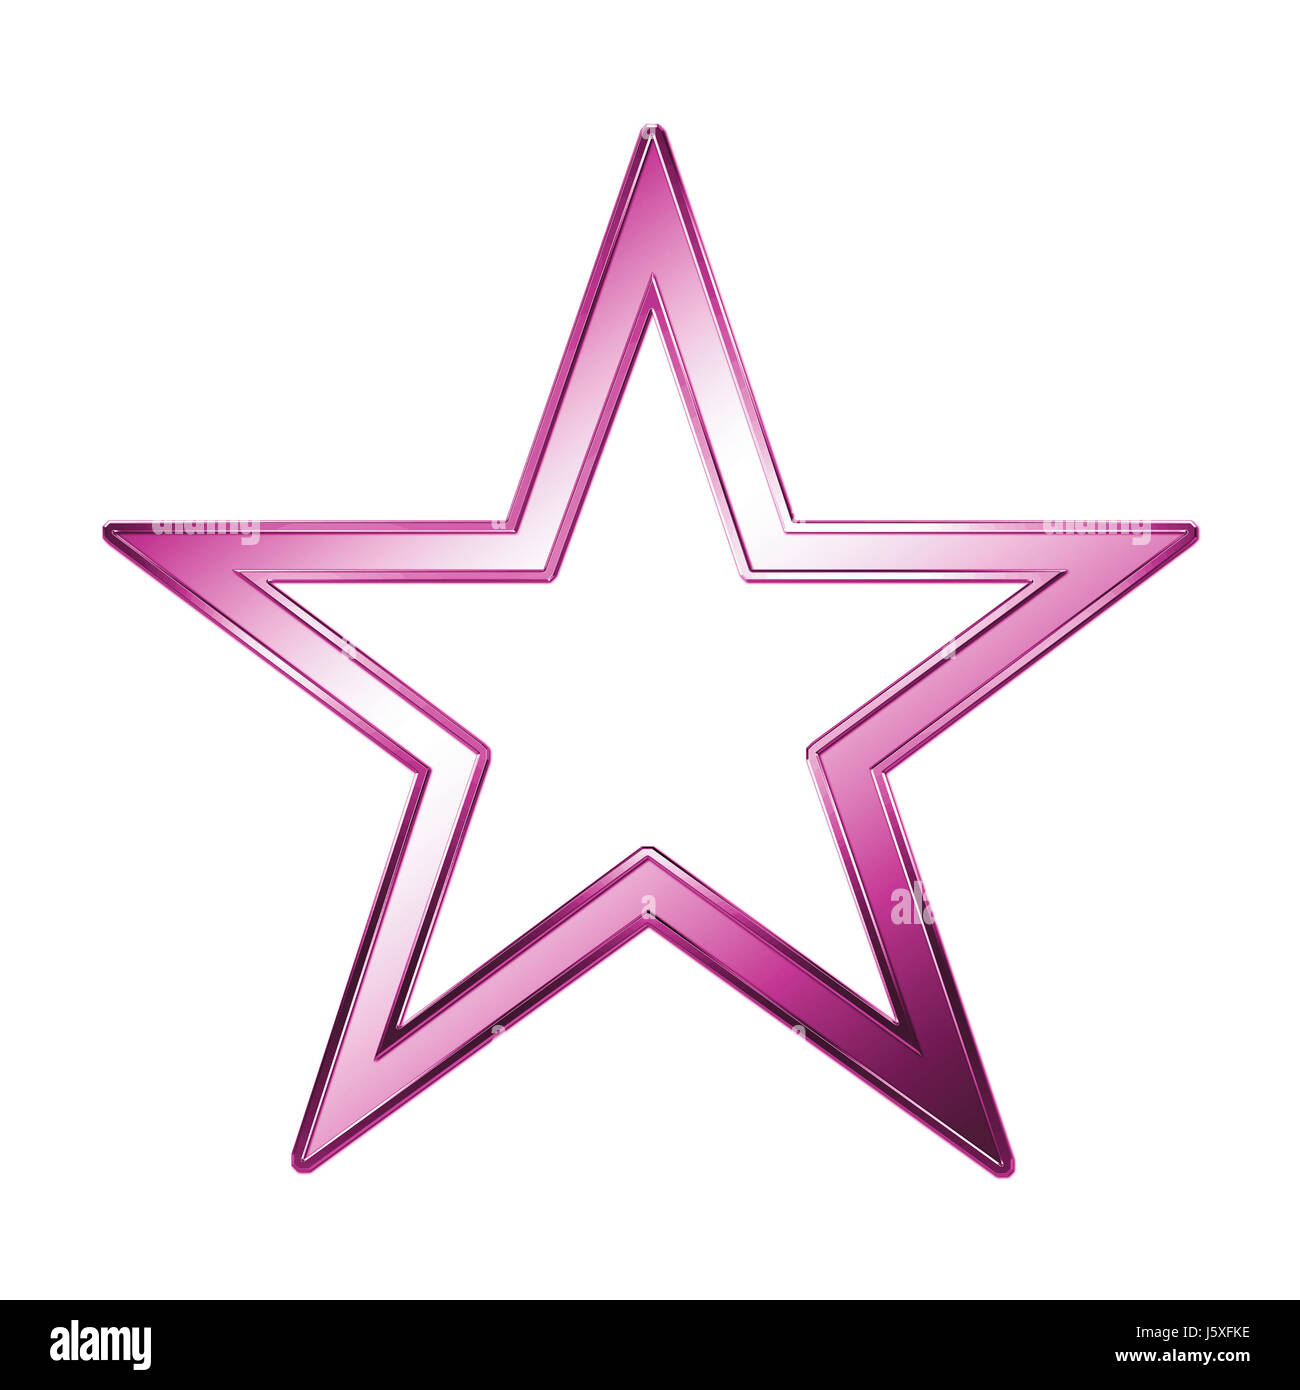 asterisk symbolic silver metal brilliance magenta lovely metallic shooting star - Stock Image